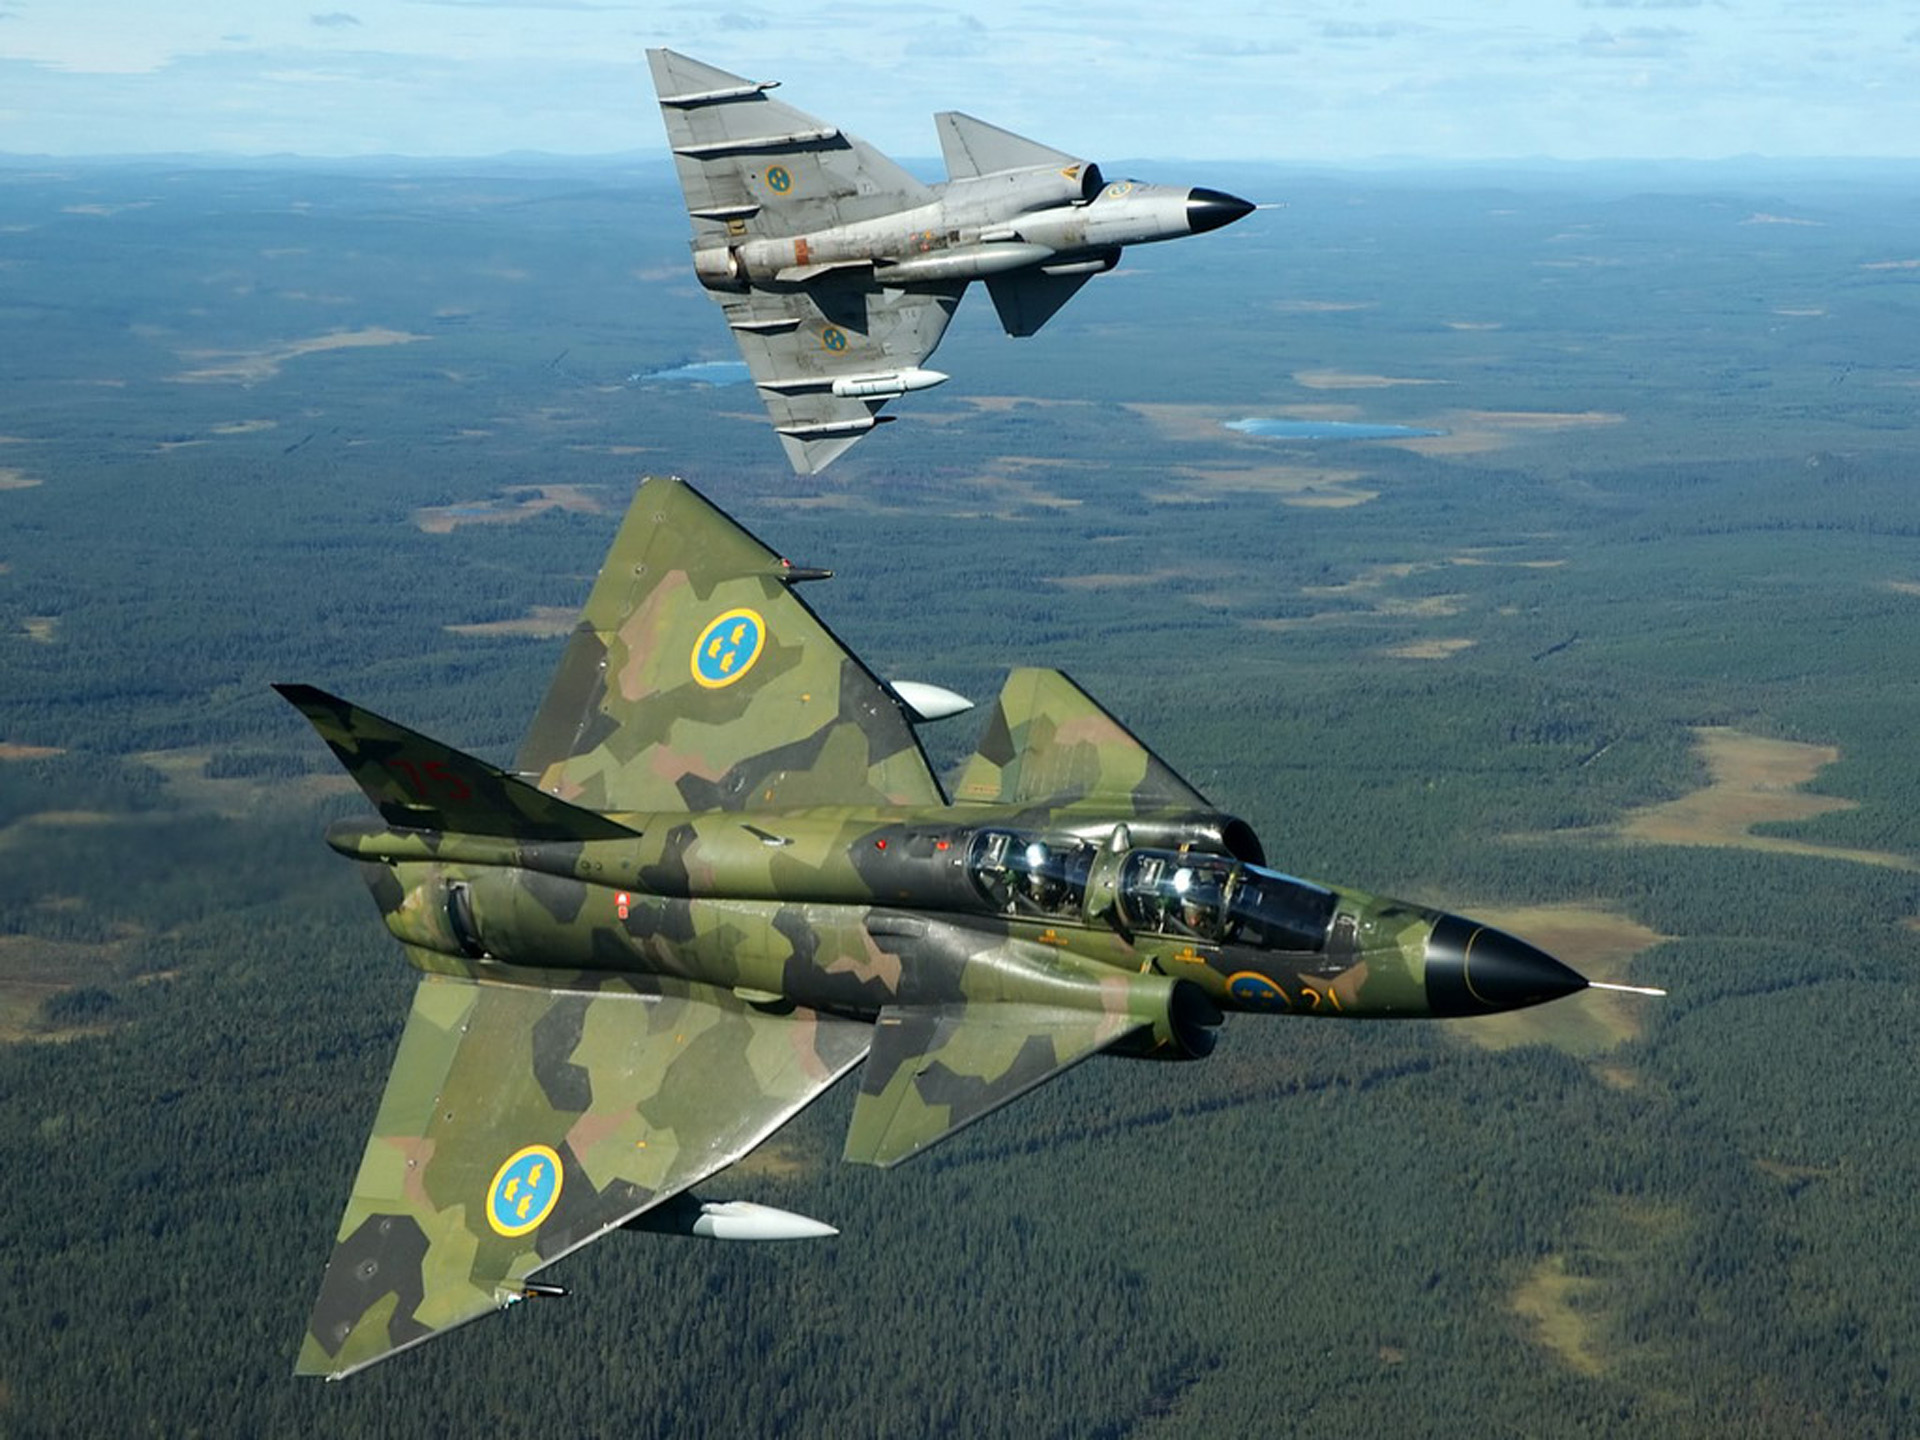 Aircraft military viggen swedish air force fighter jet